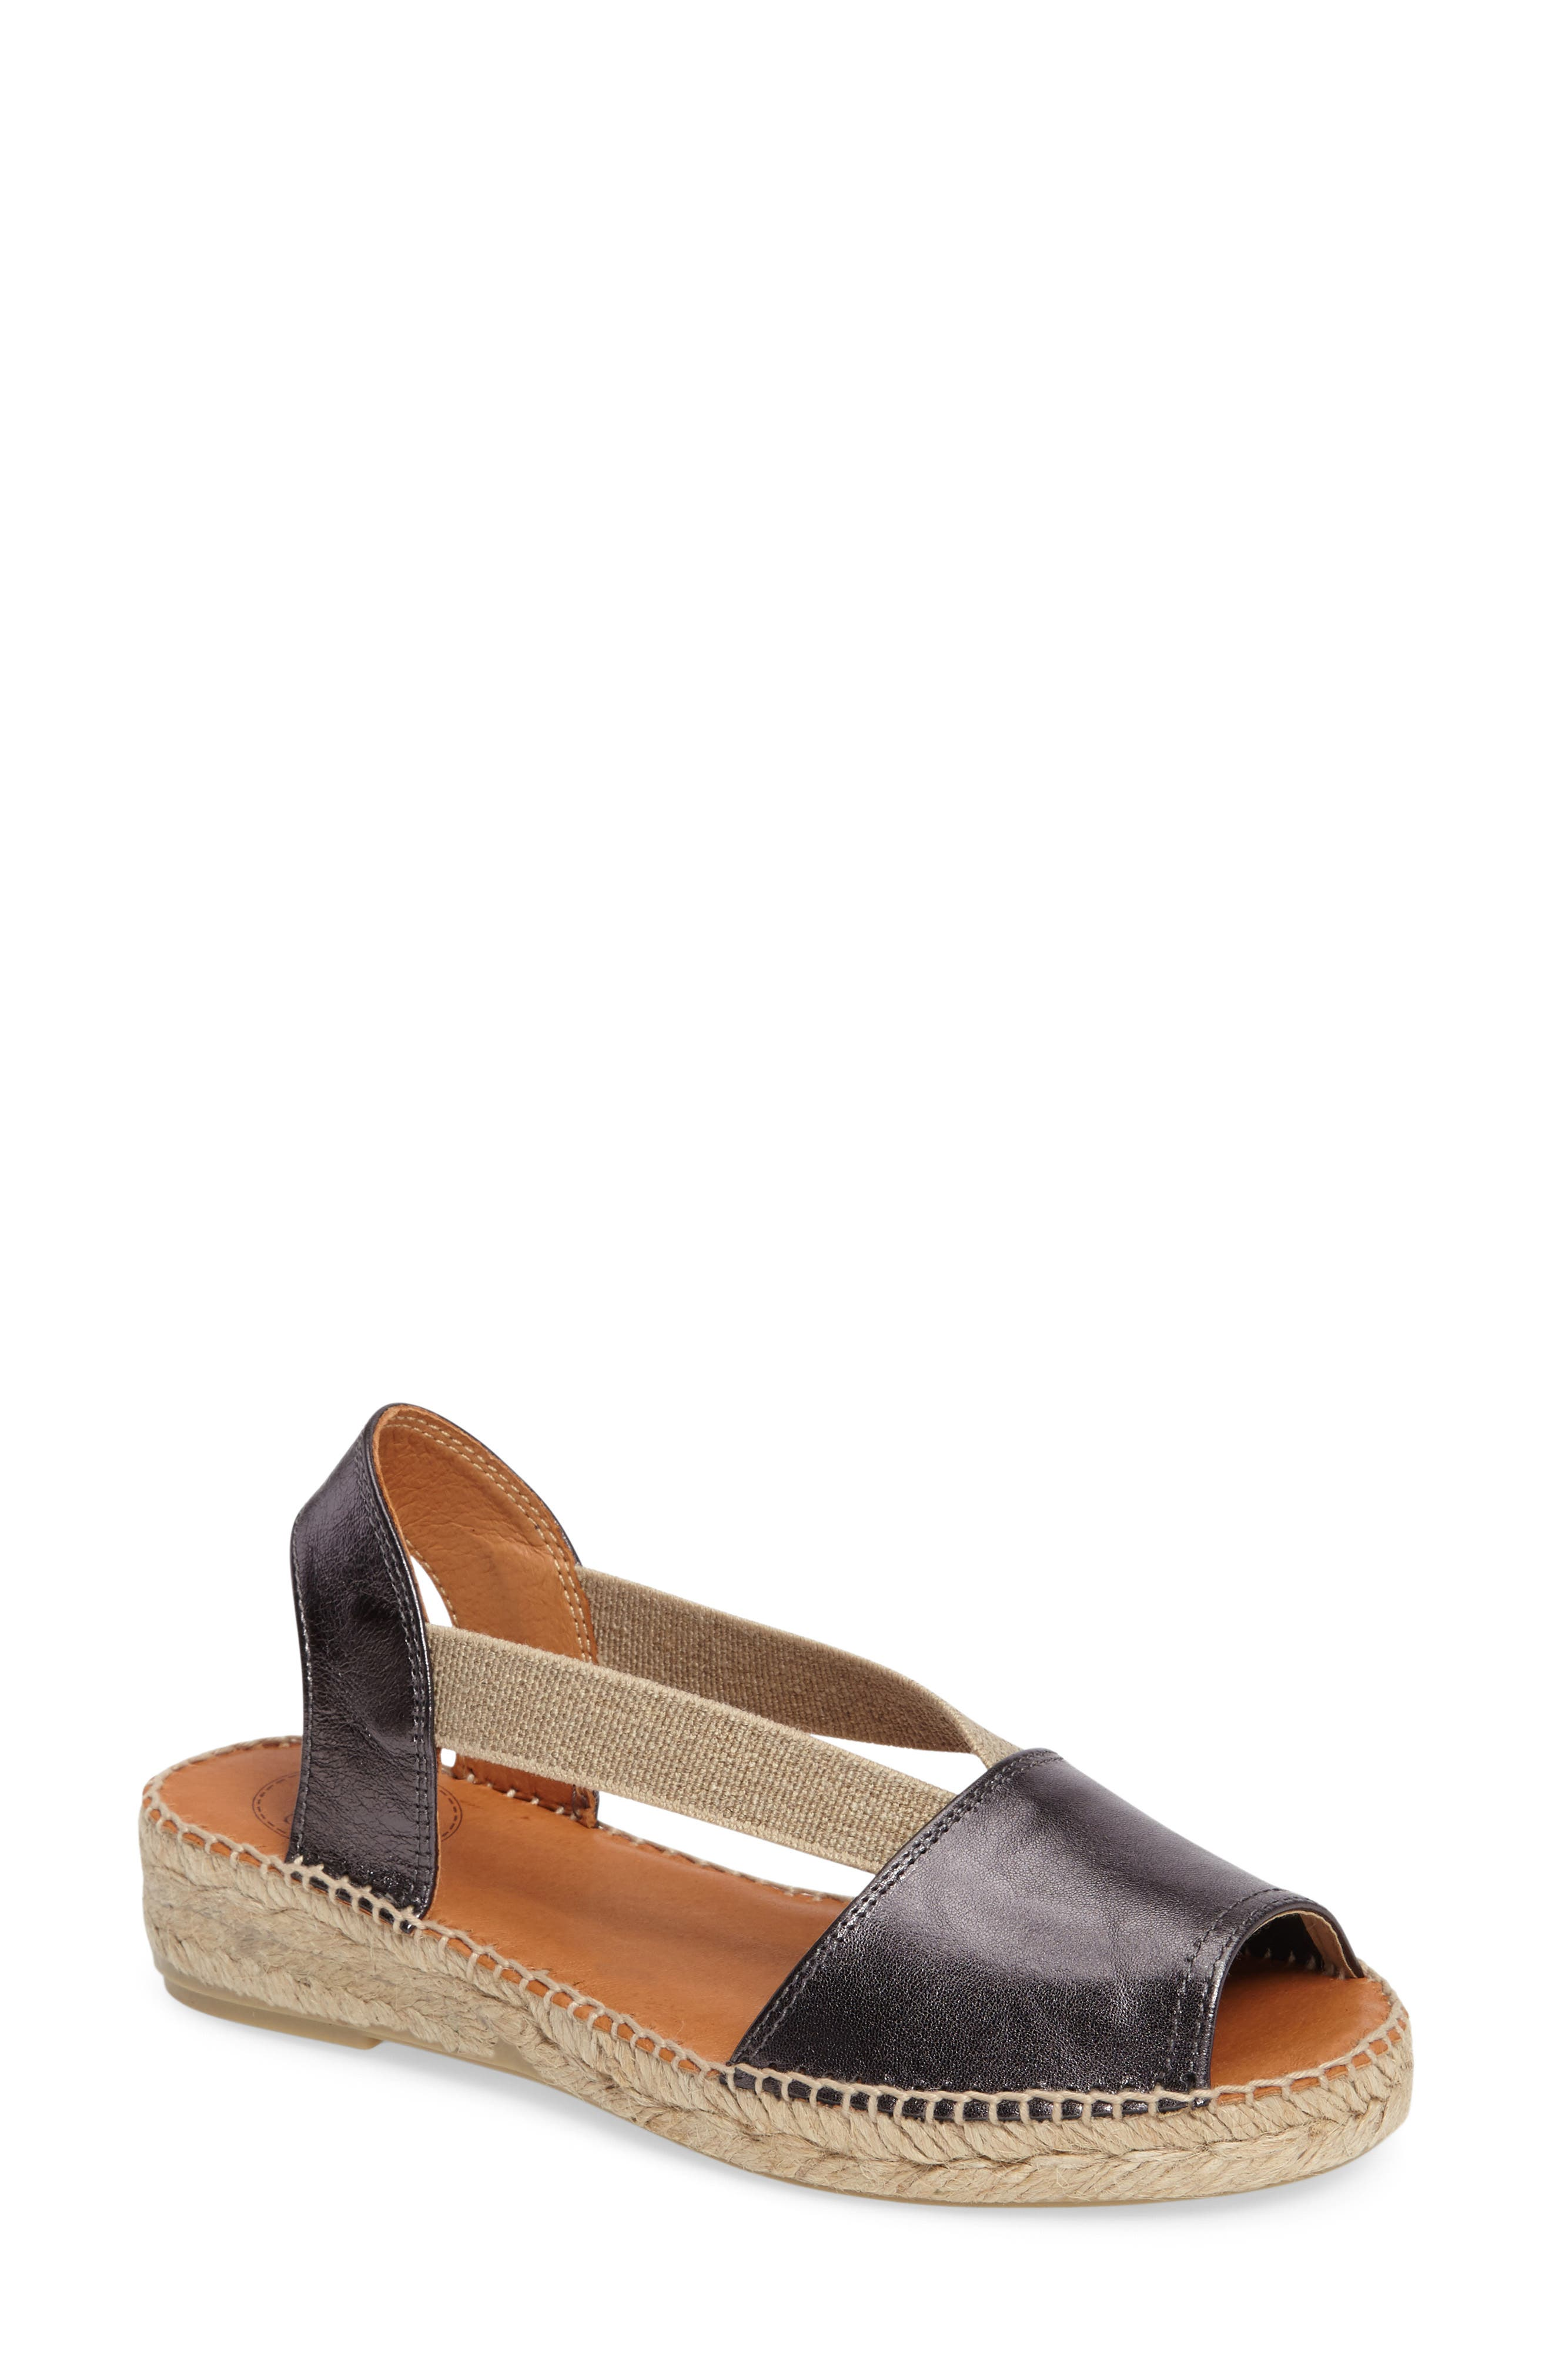 Etna Espadrille Sandal,                         Main,                         color, LEAD LEATHER